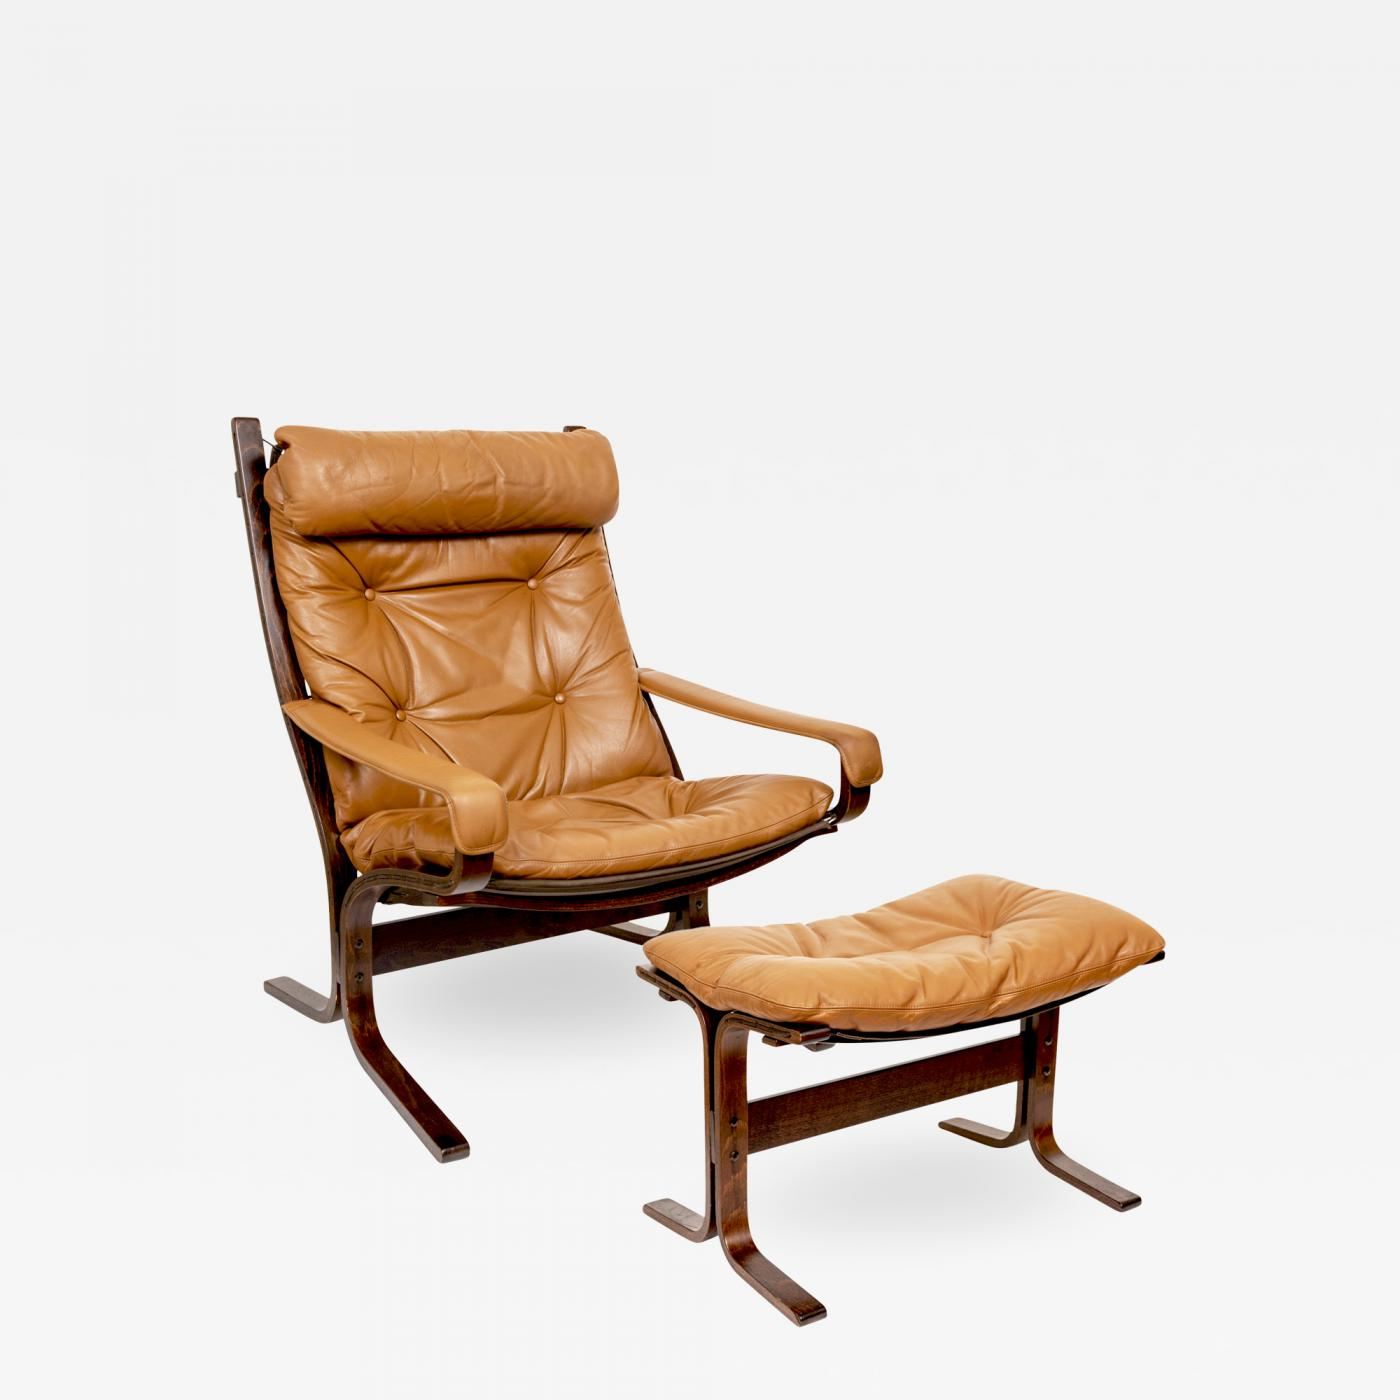 Brilliant Ingmar Relling Mid Century Siesta Leather Lounge Chair By Ingmar Relling For Westnofa Gmtry Best Dining Table And Chair Ideas Images Gmtryco